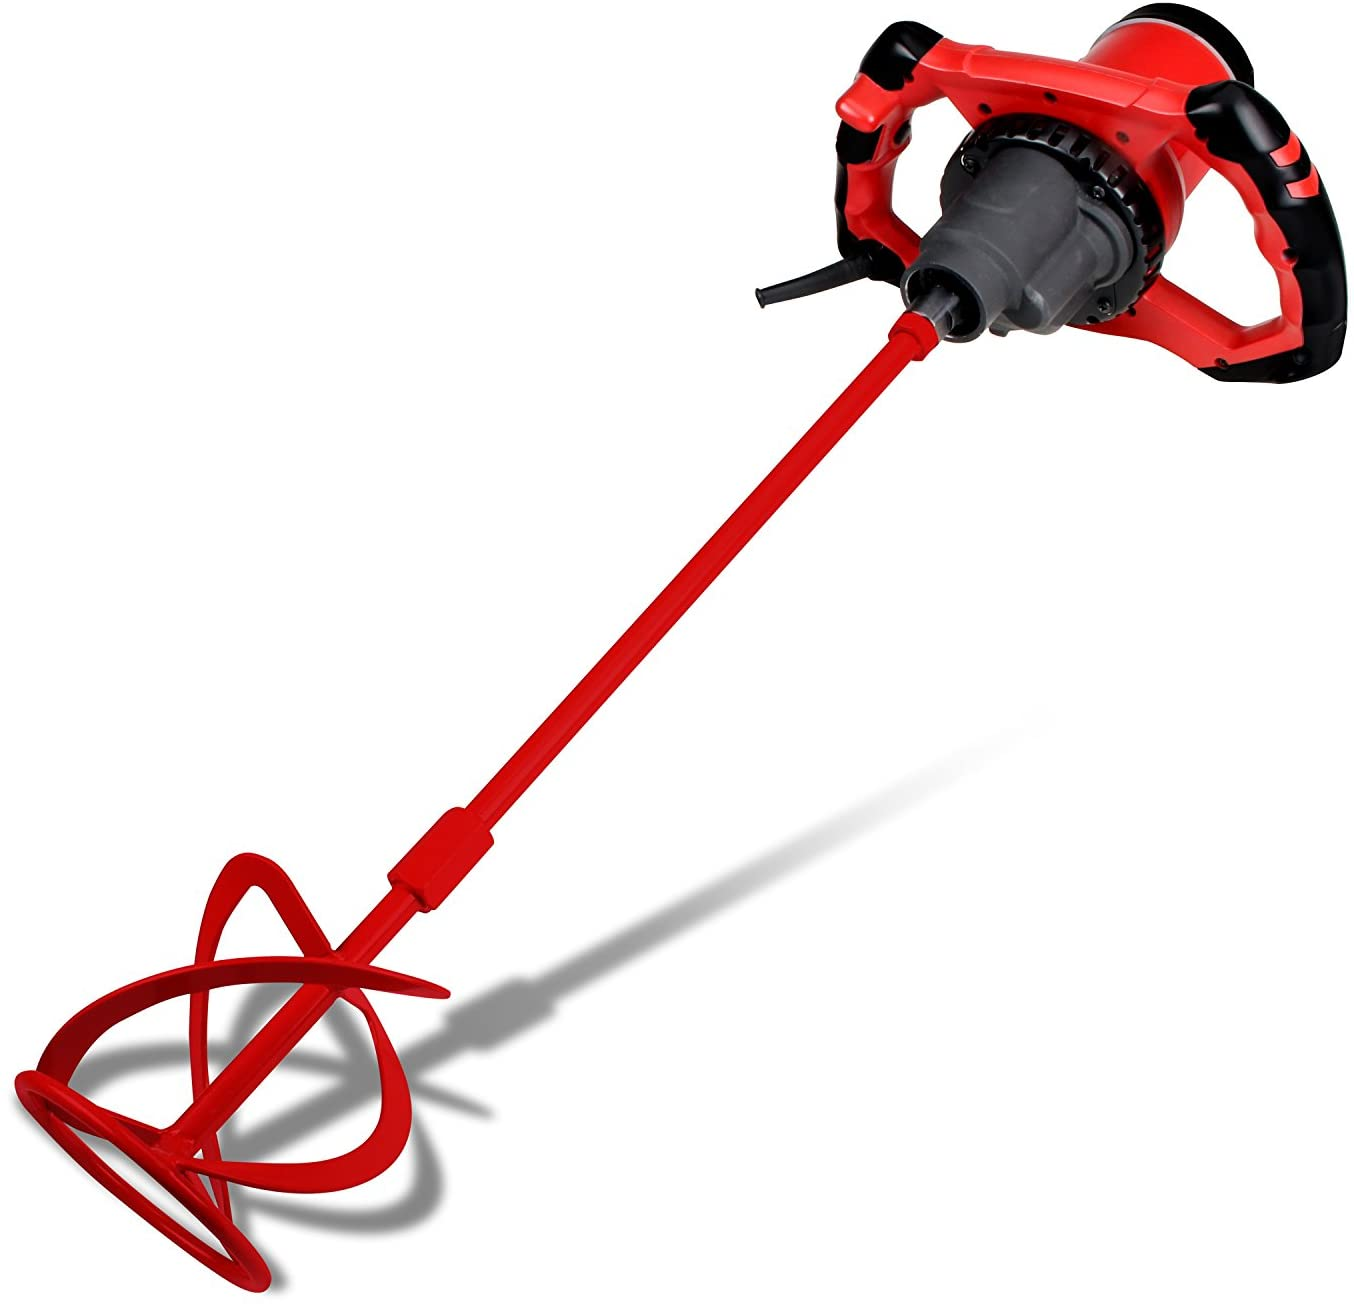 Rubi 25944 - Electric Mixer with Paddle 220V 1200W 50/60HZ, Rubimix-9 N